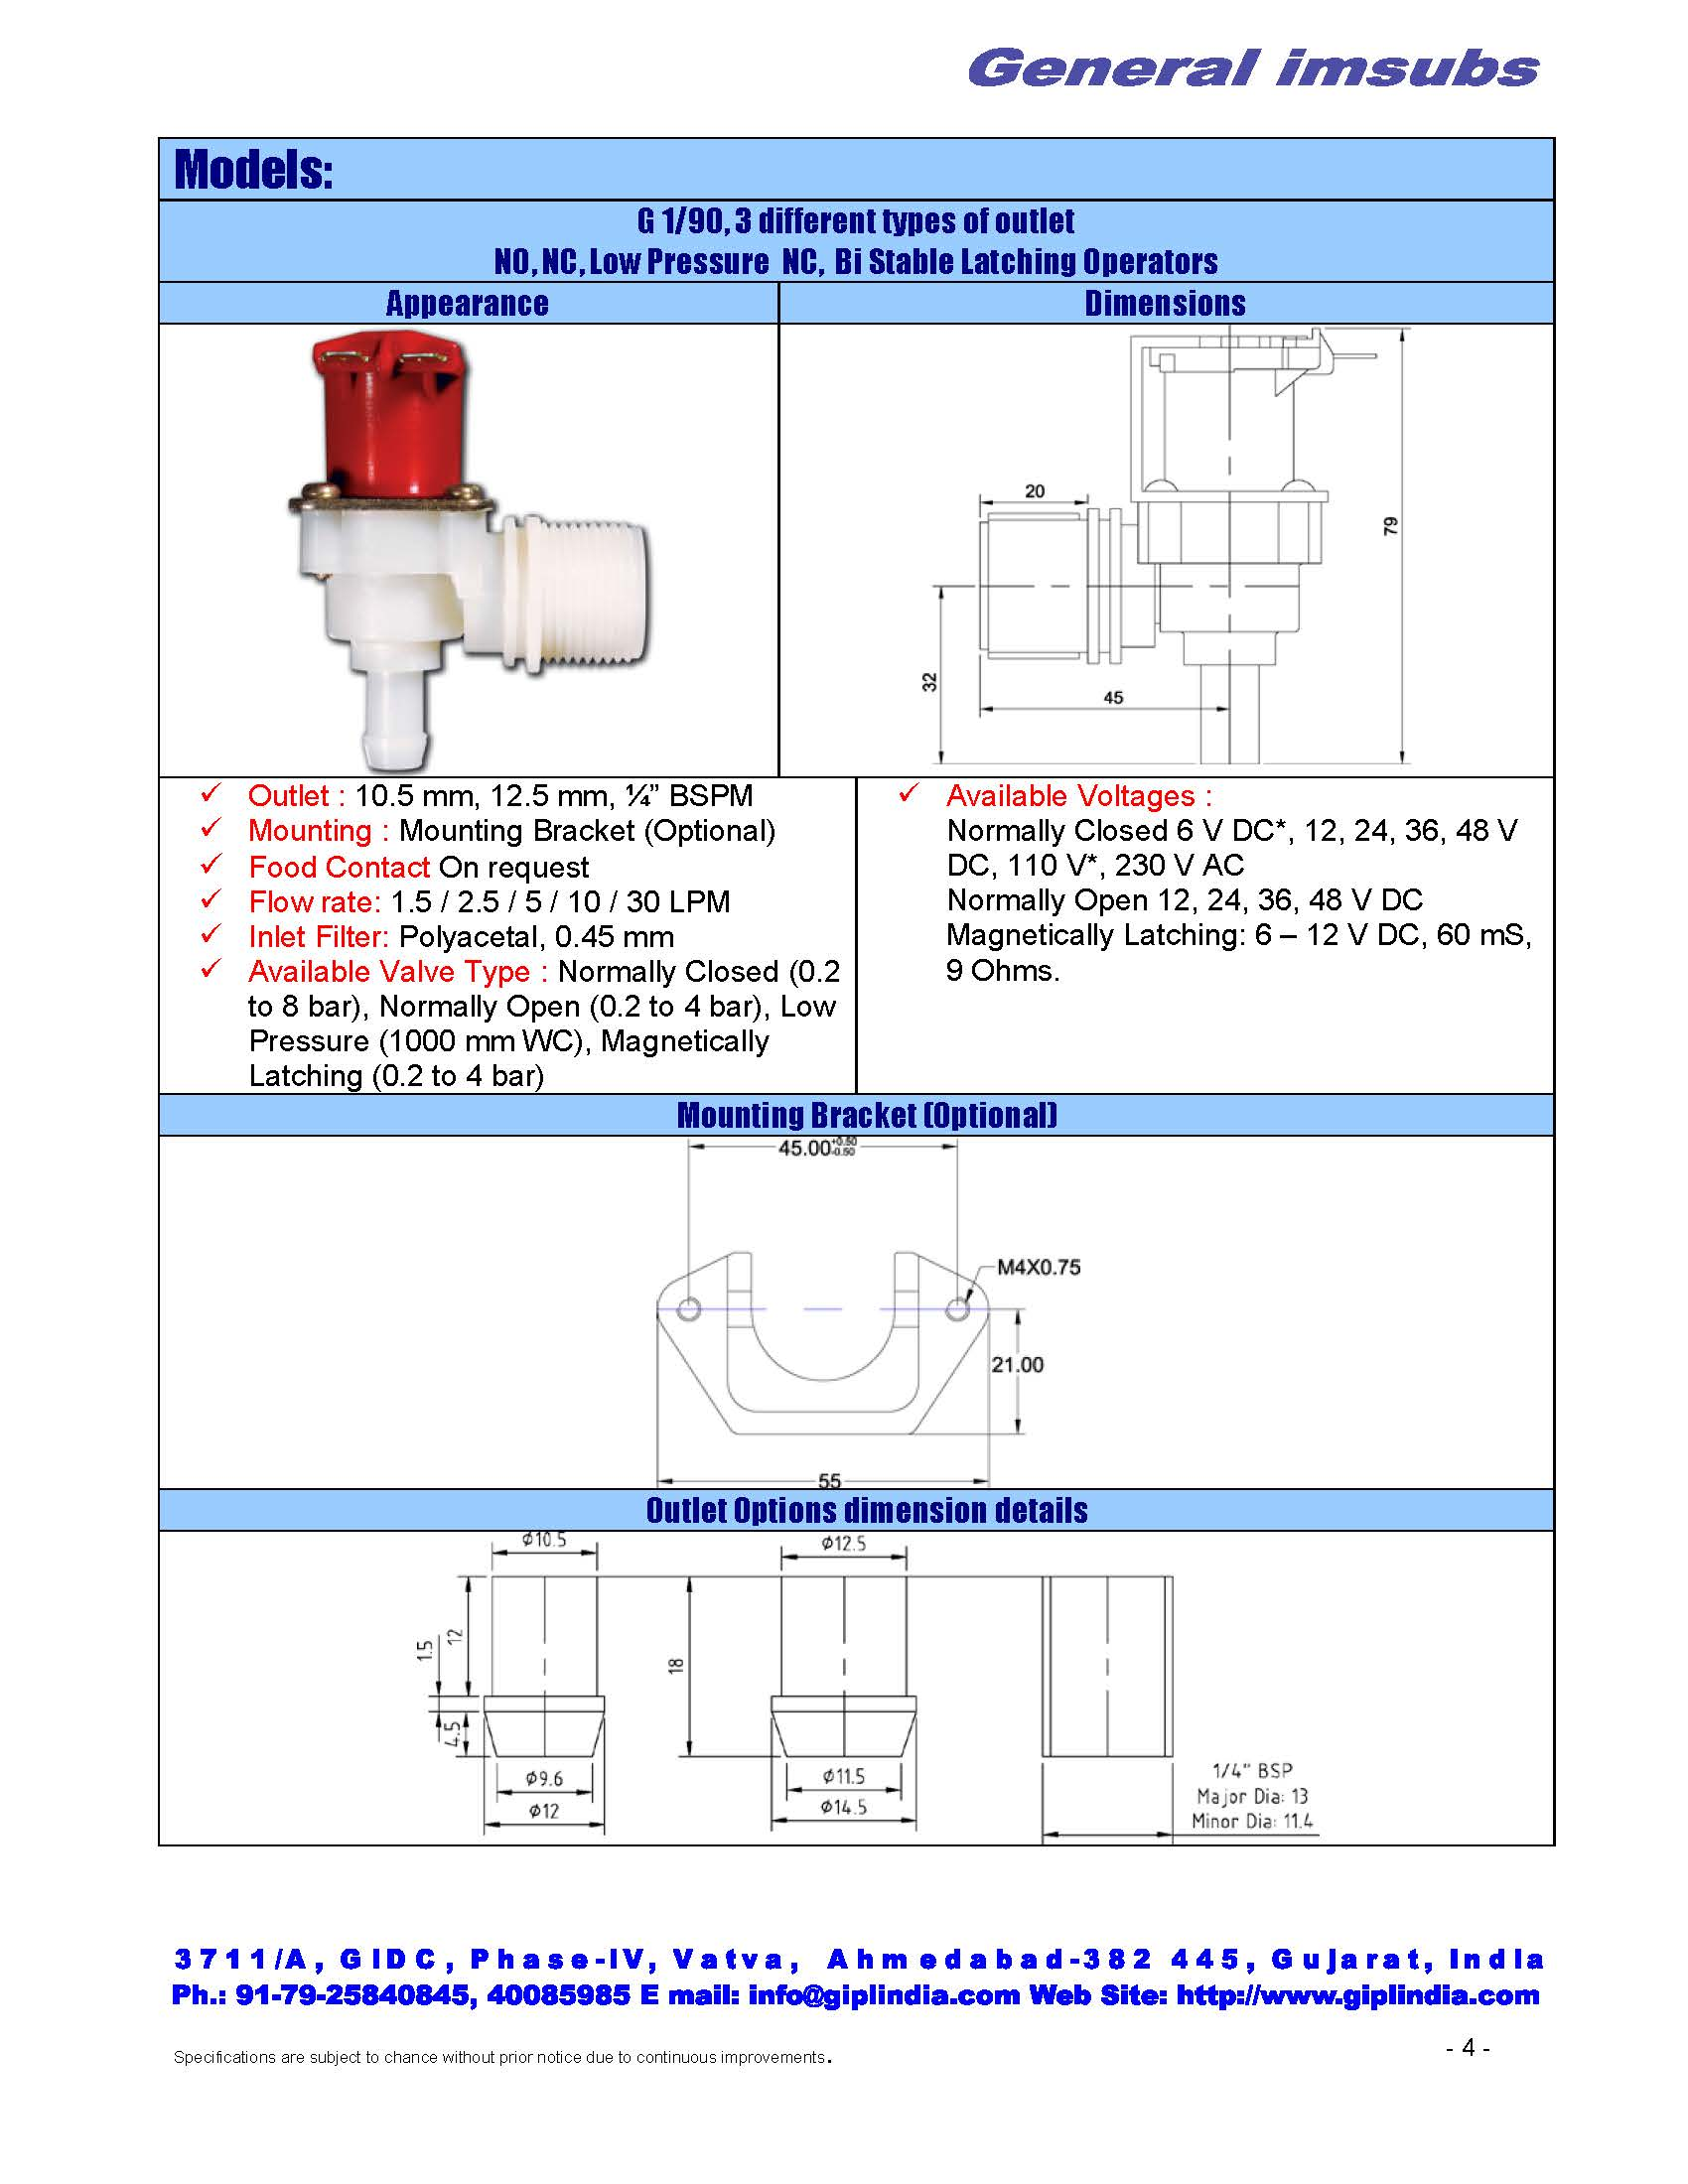 "normally open angled solenoid valve, 3/4"" BSP inlet"